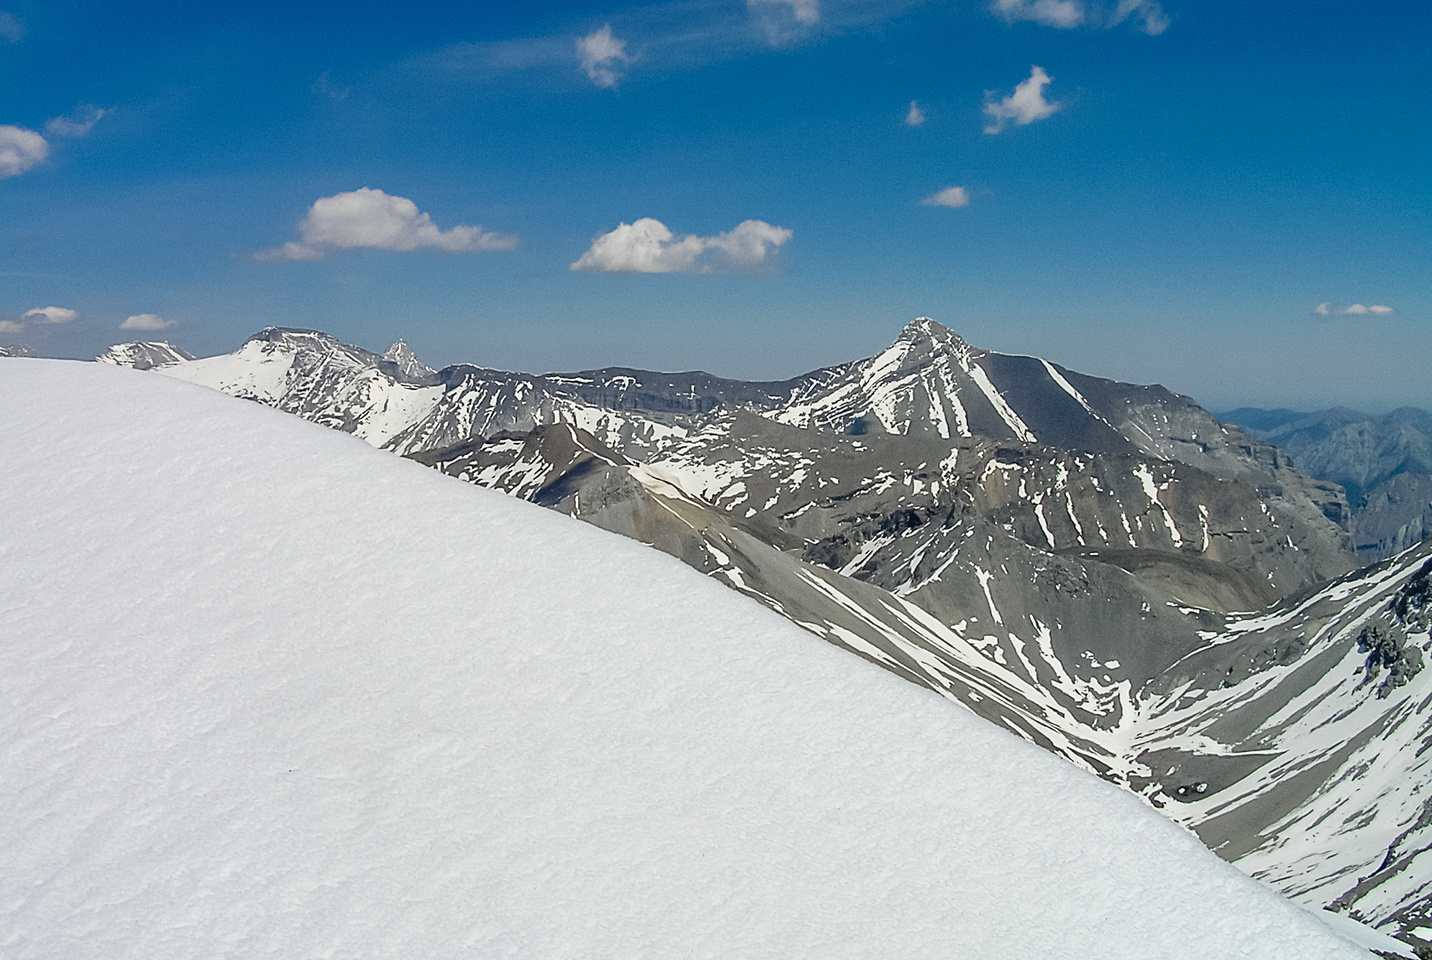 Sparrowhawk (L) and Bogart (R) are just visible over the summit cornice.